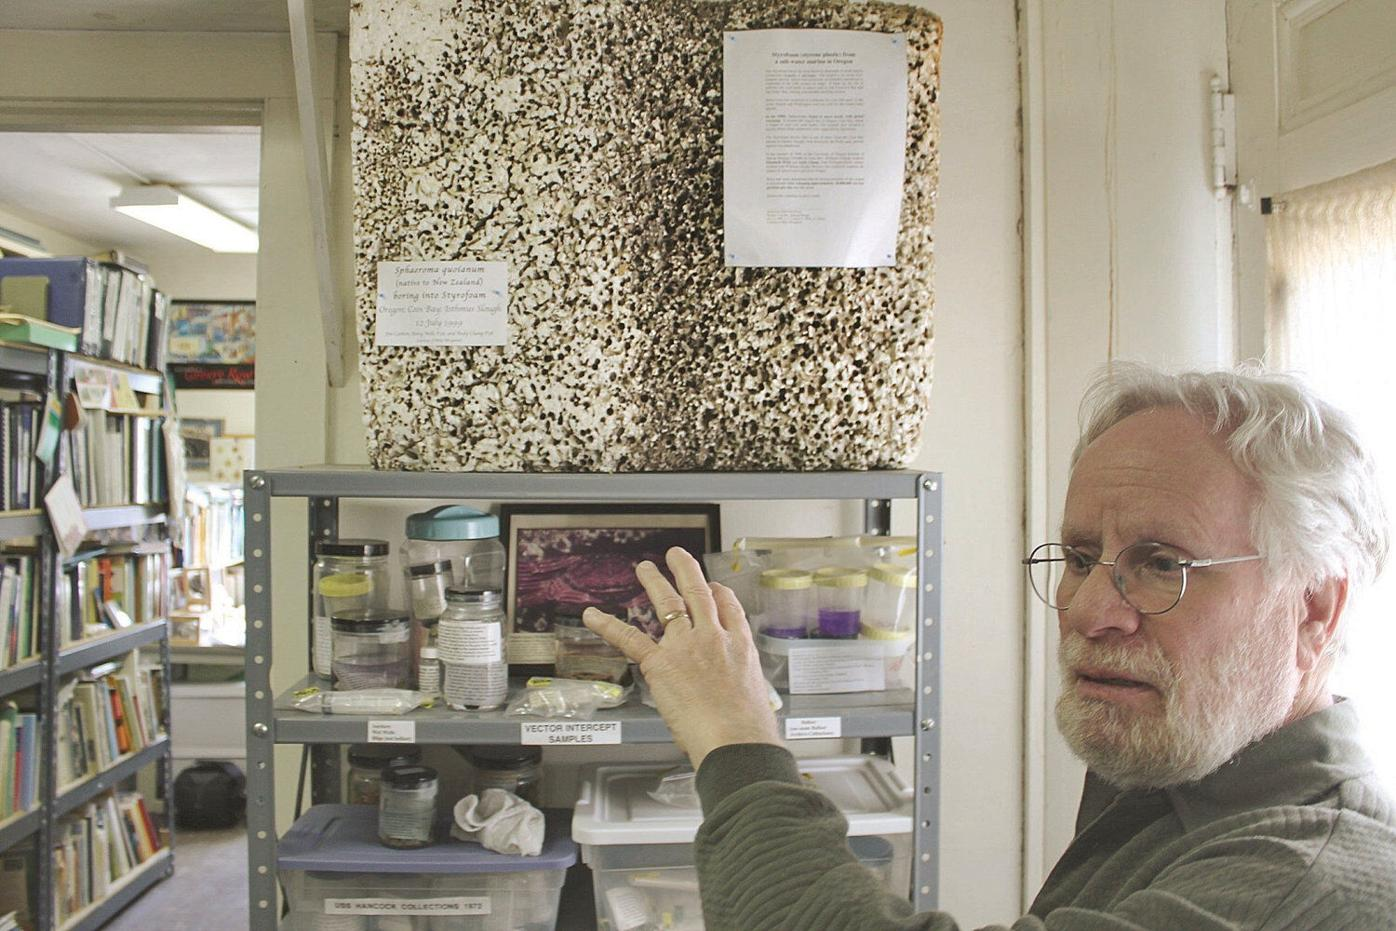 Youthful discovery drove Williams researcher to devote life to uncovering invasive species